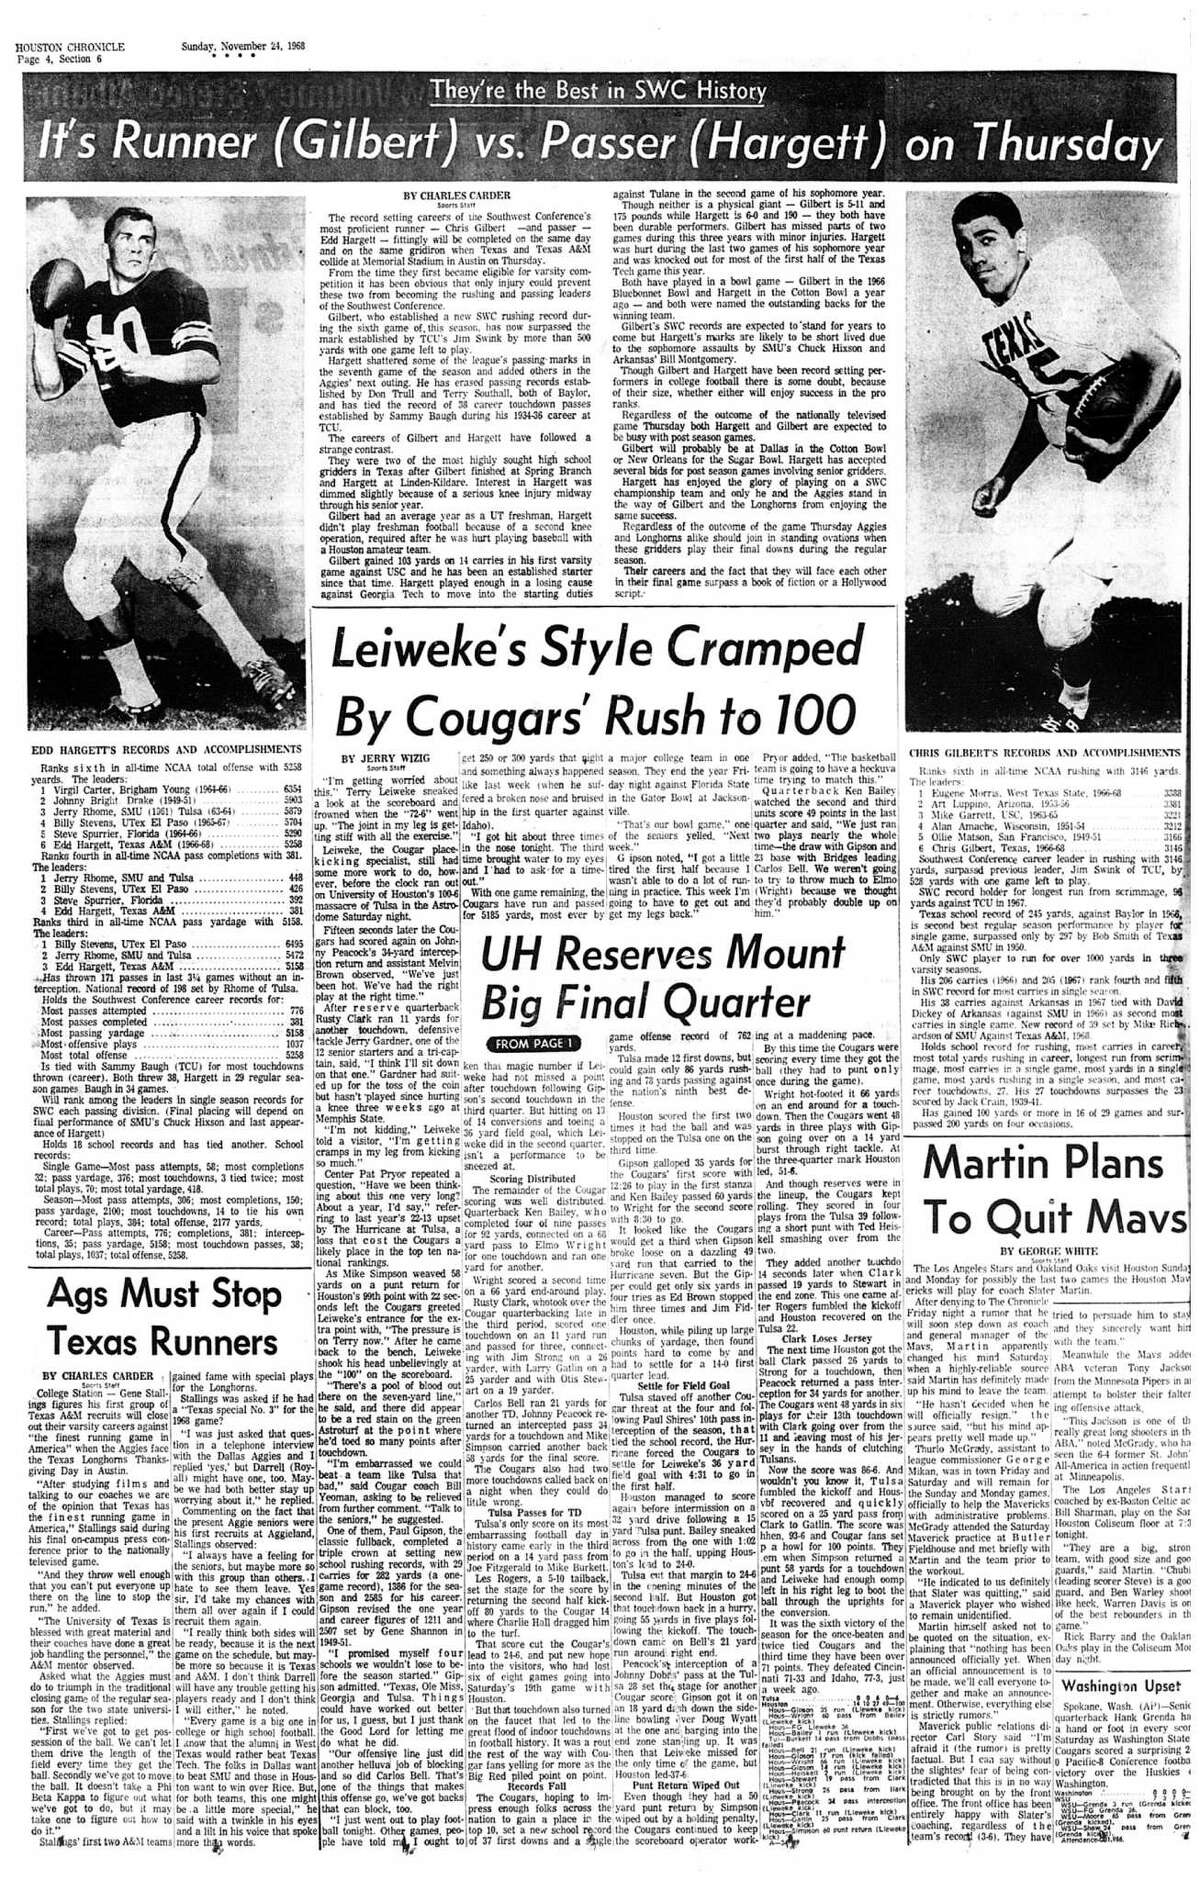 Houston Chronicle inside page (HISTORIC) Â?- November 24, 1968 - section 6, page 4. UH Reserves Mount Big Final Quarter. Leiweke's Style Cramped By Cougars' Rush to 100